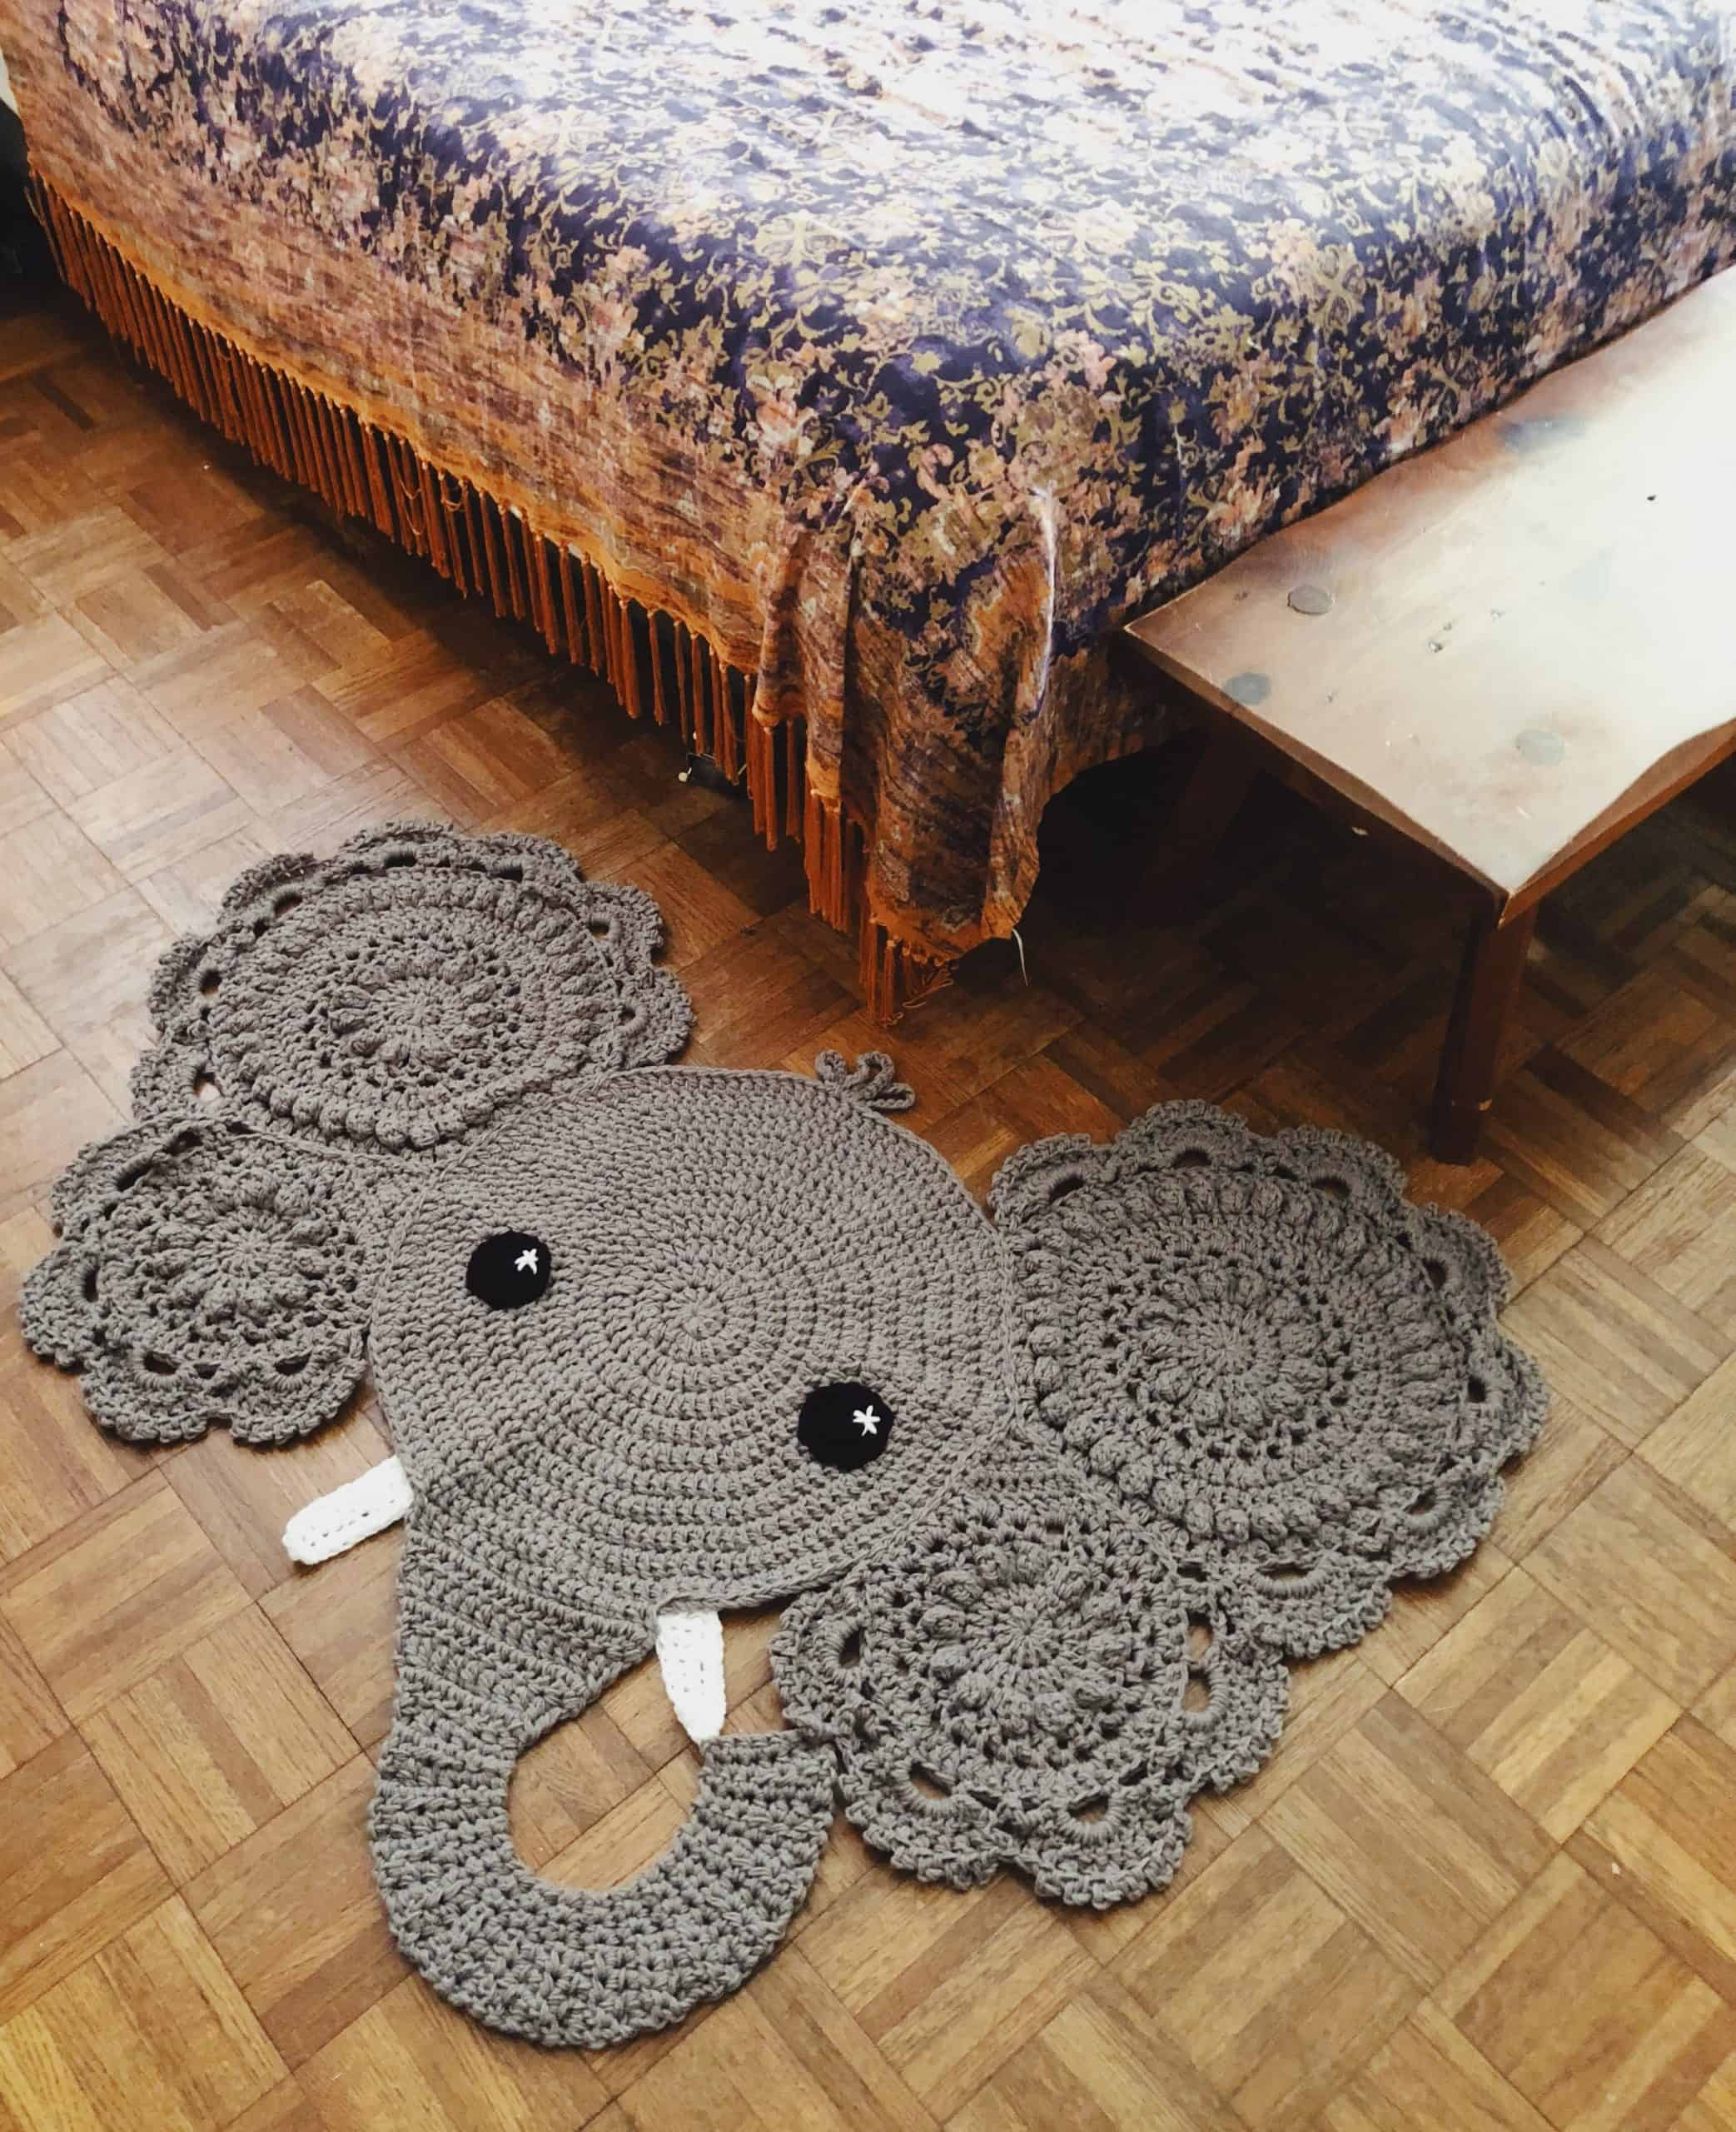 Cute handcrafted rugs